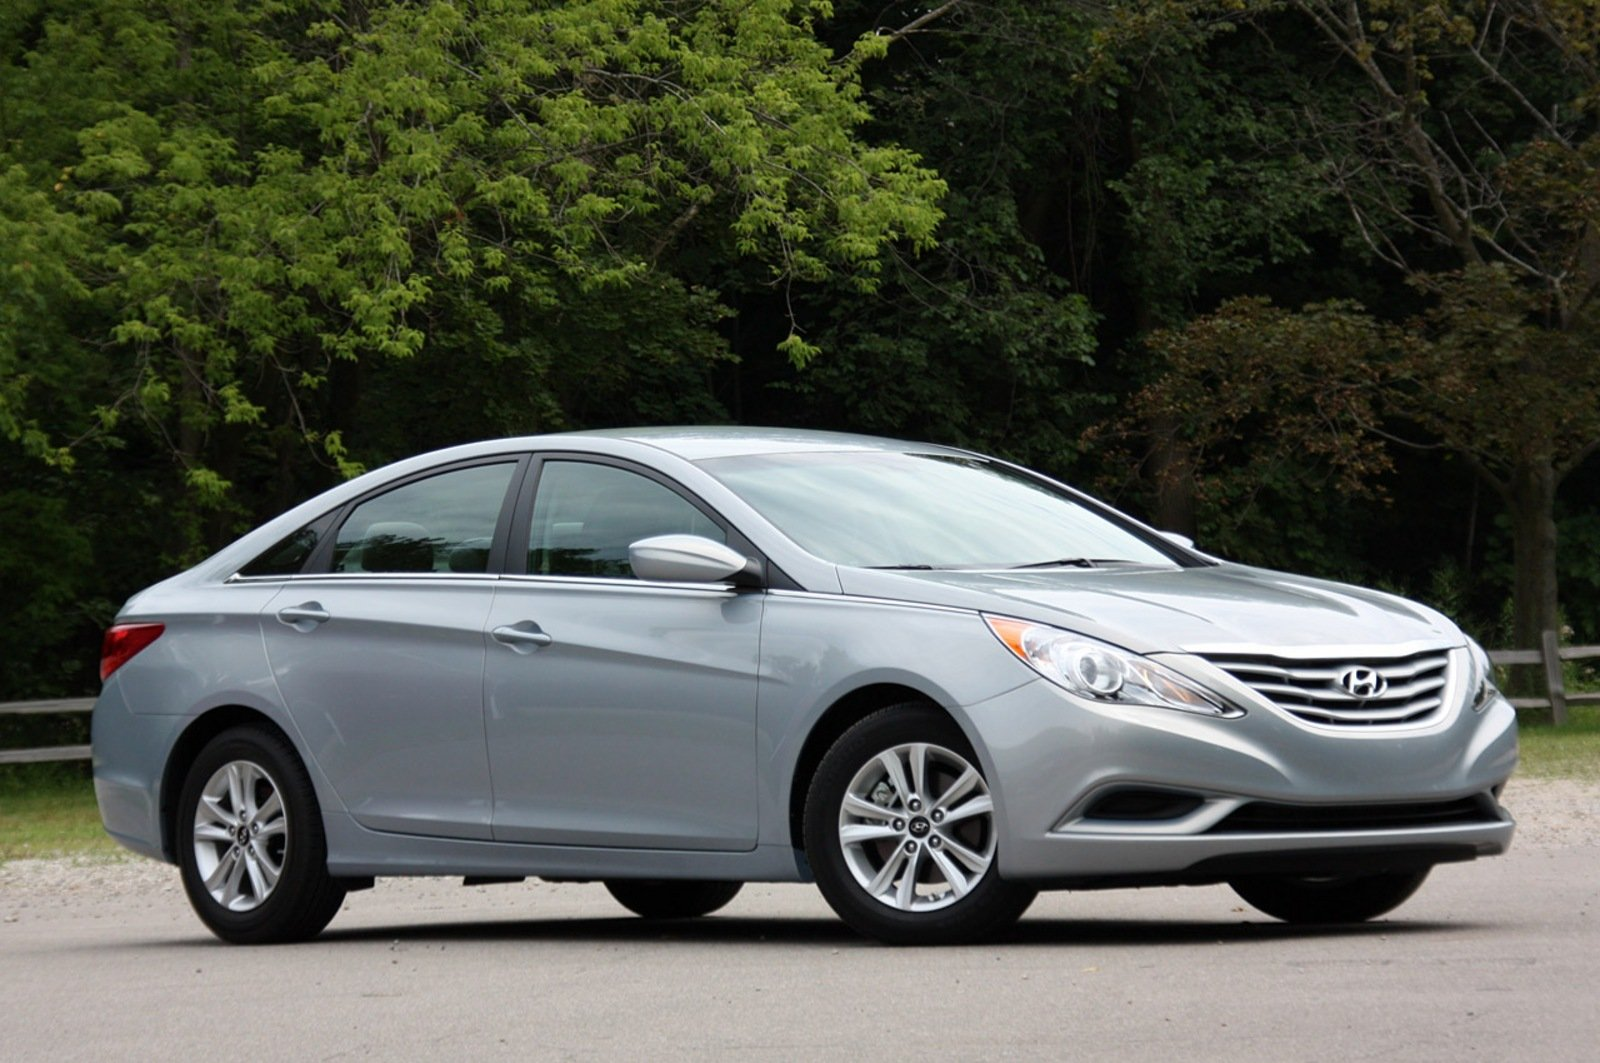 Hyundai Sonata Overtakes Nissan Altima For Third Place